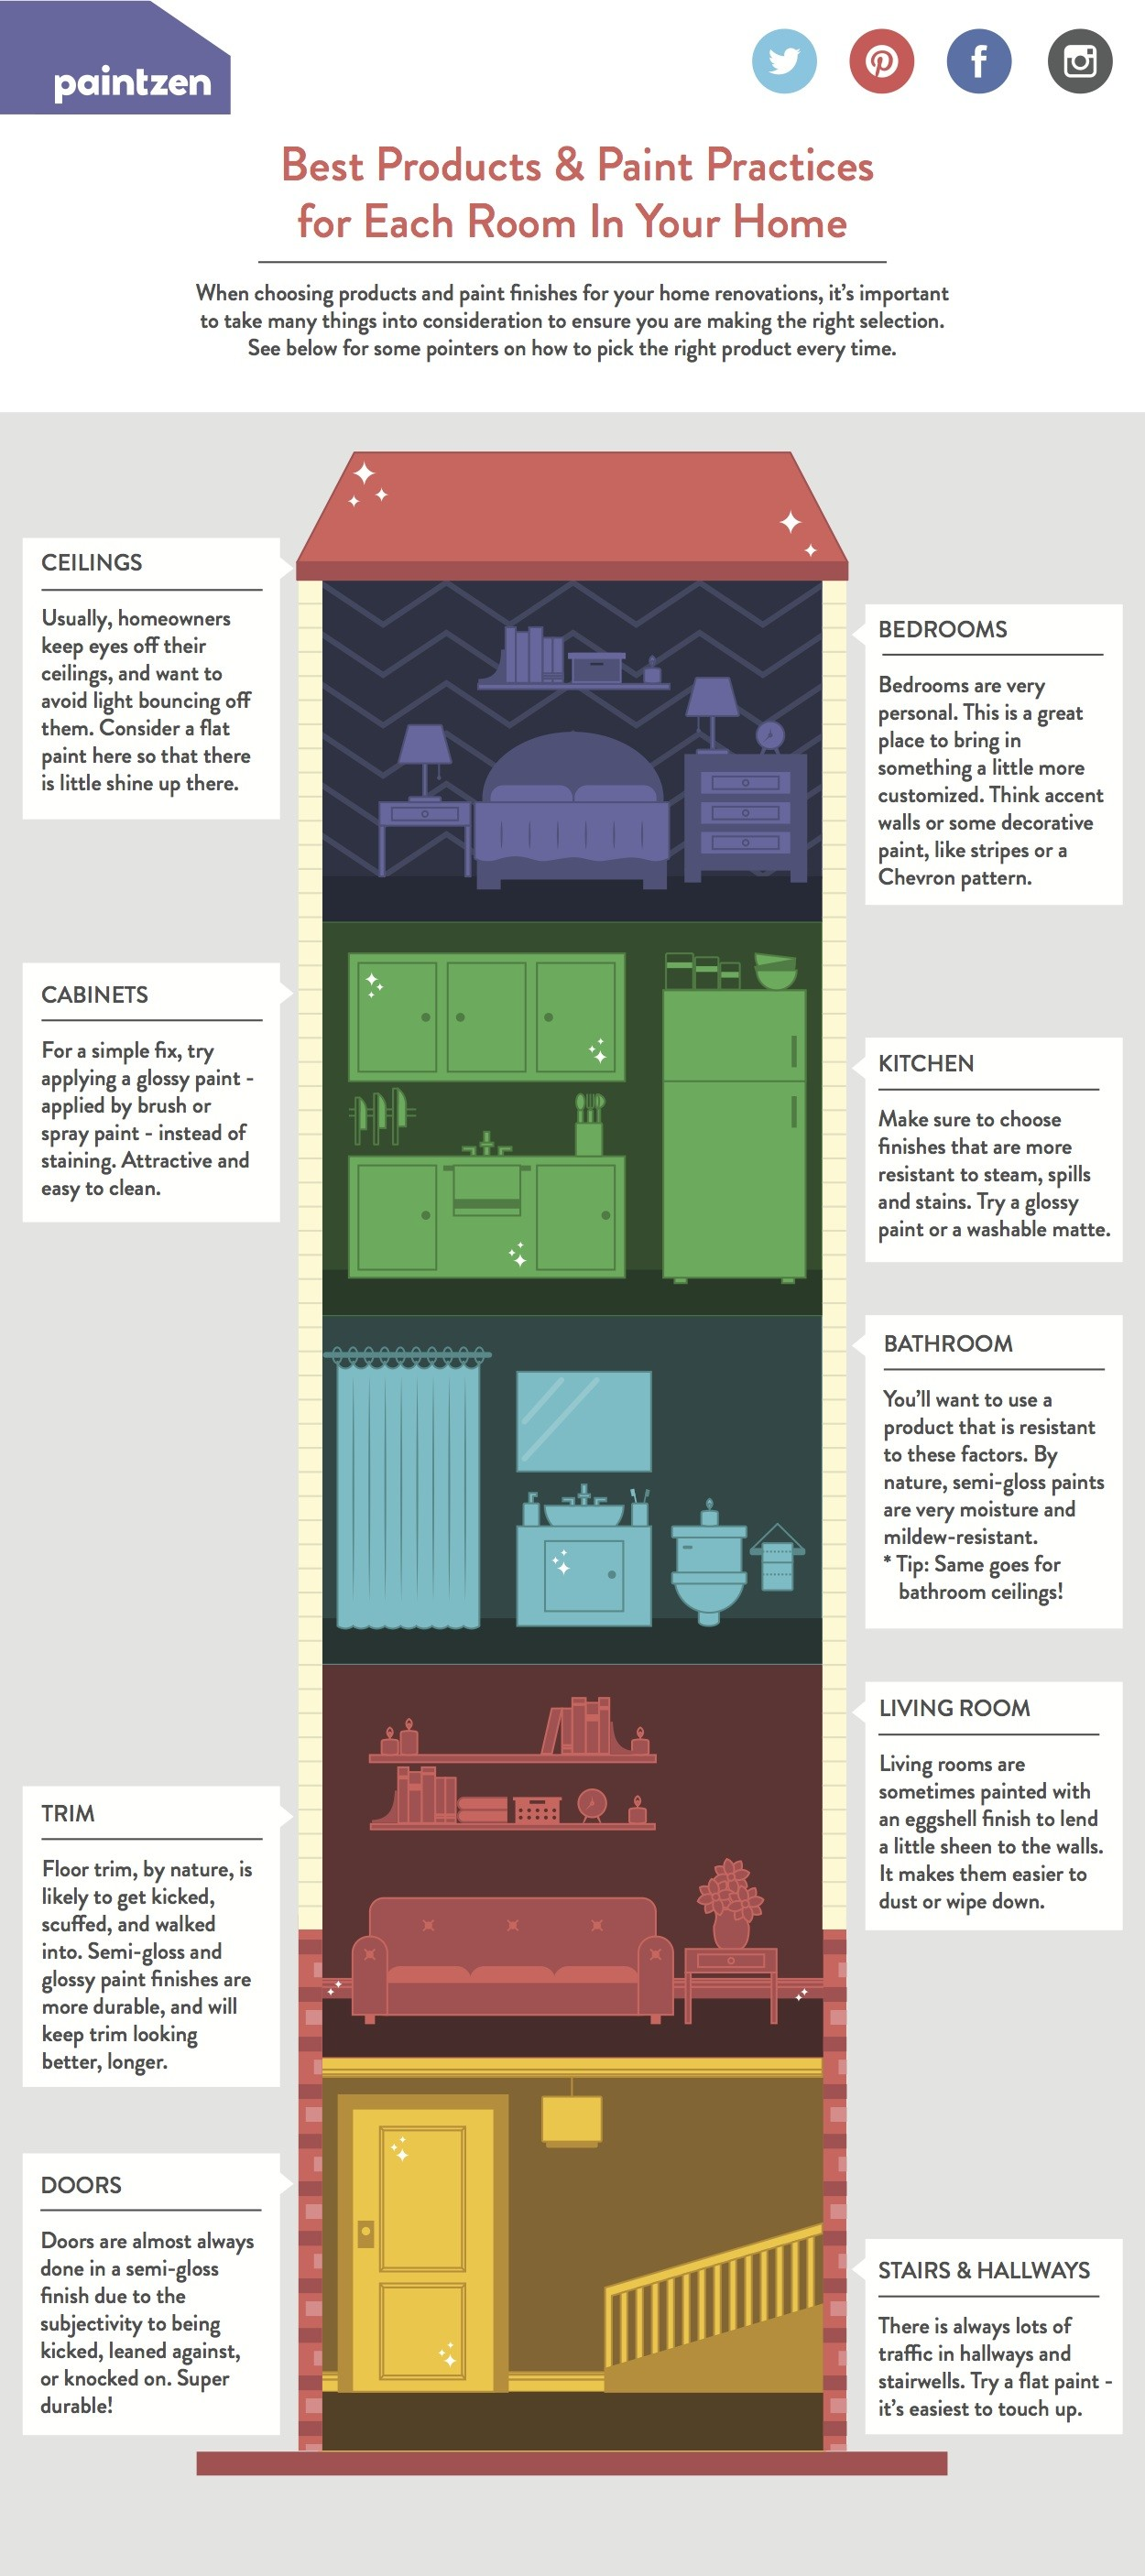 Paint Product Infographic